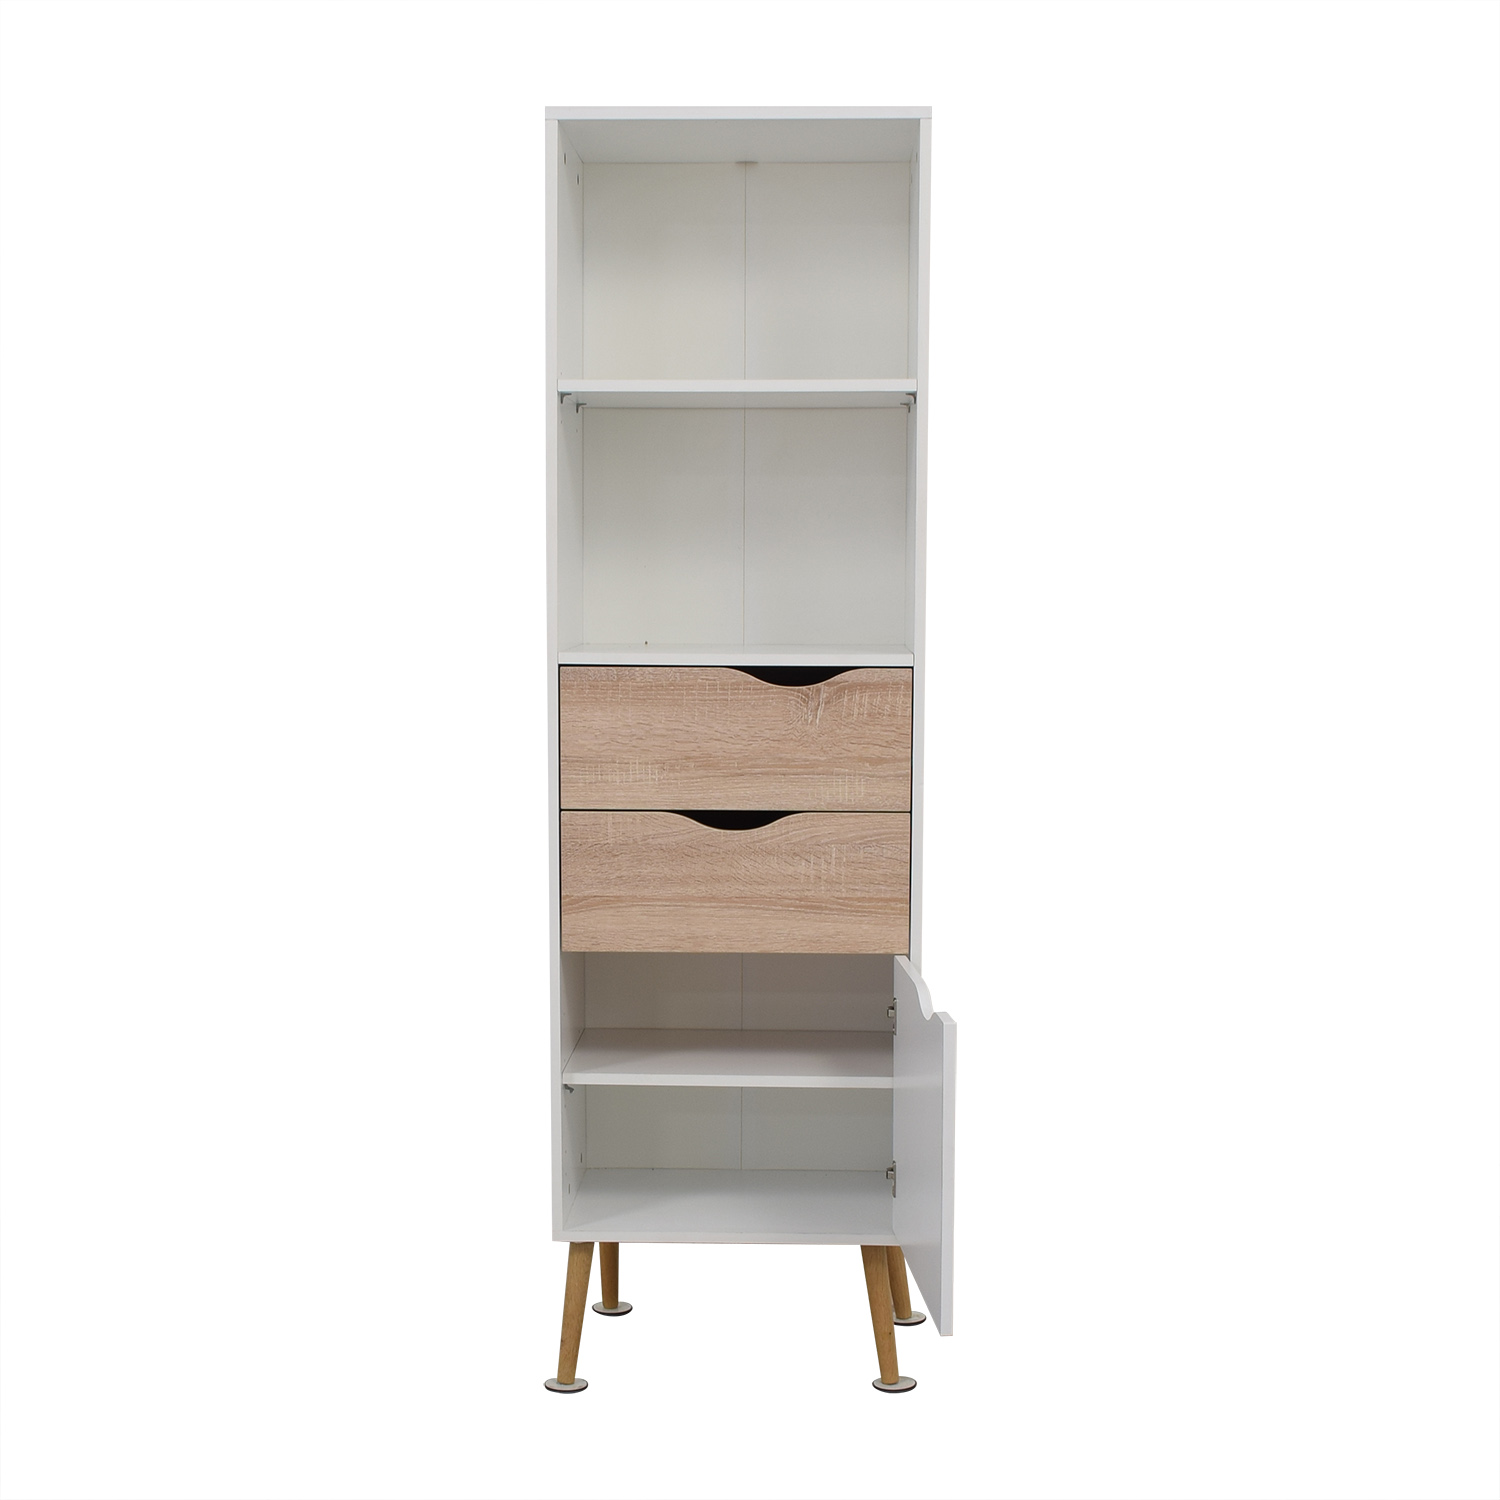 shop Amazon Amazon White Two-Drawer Storage Bookcase online